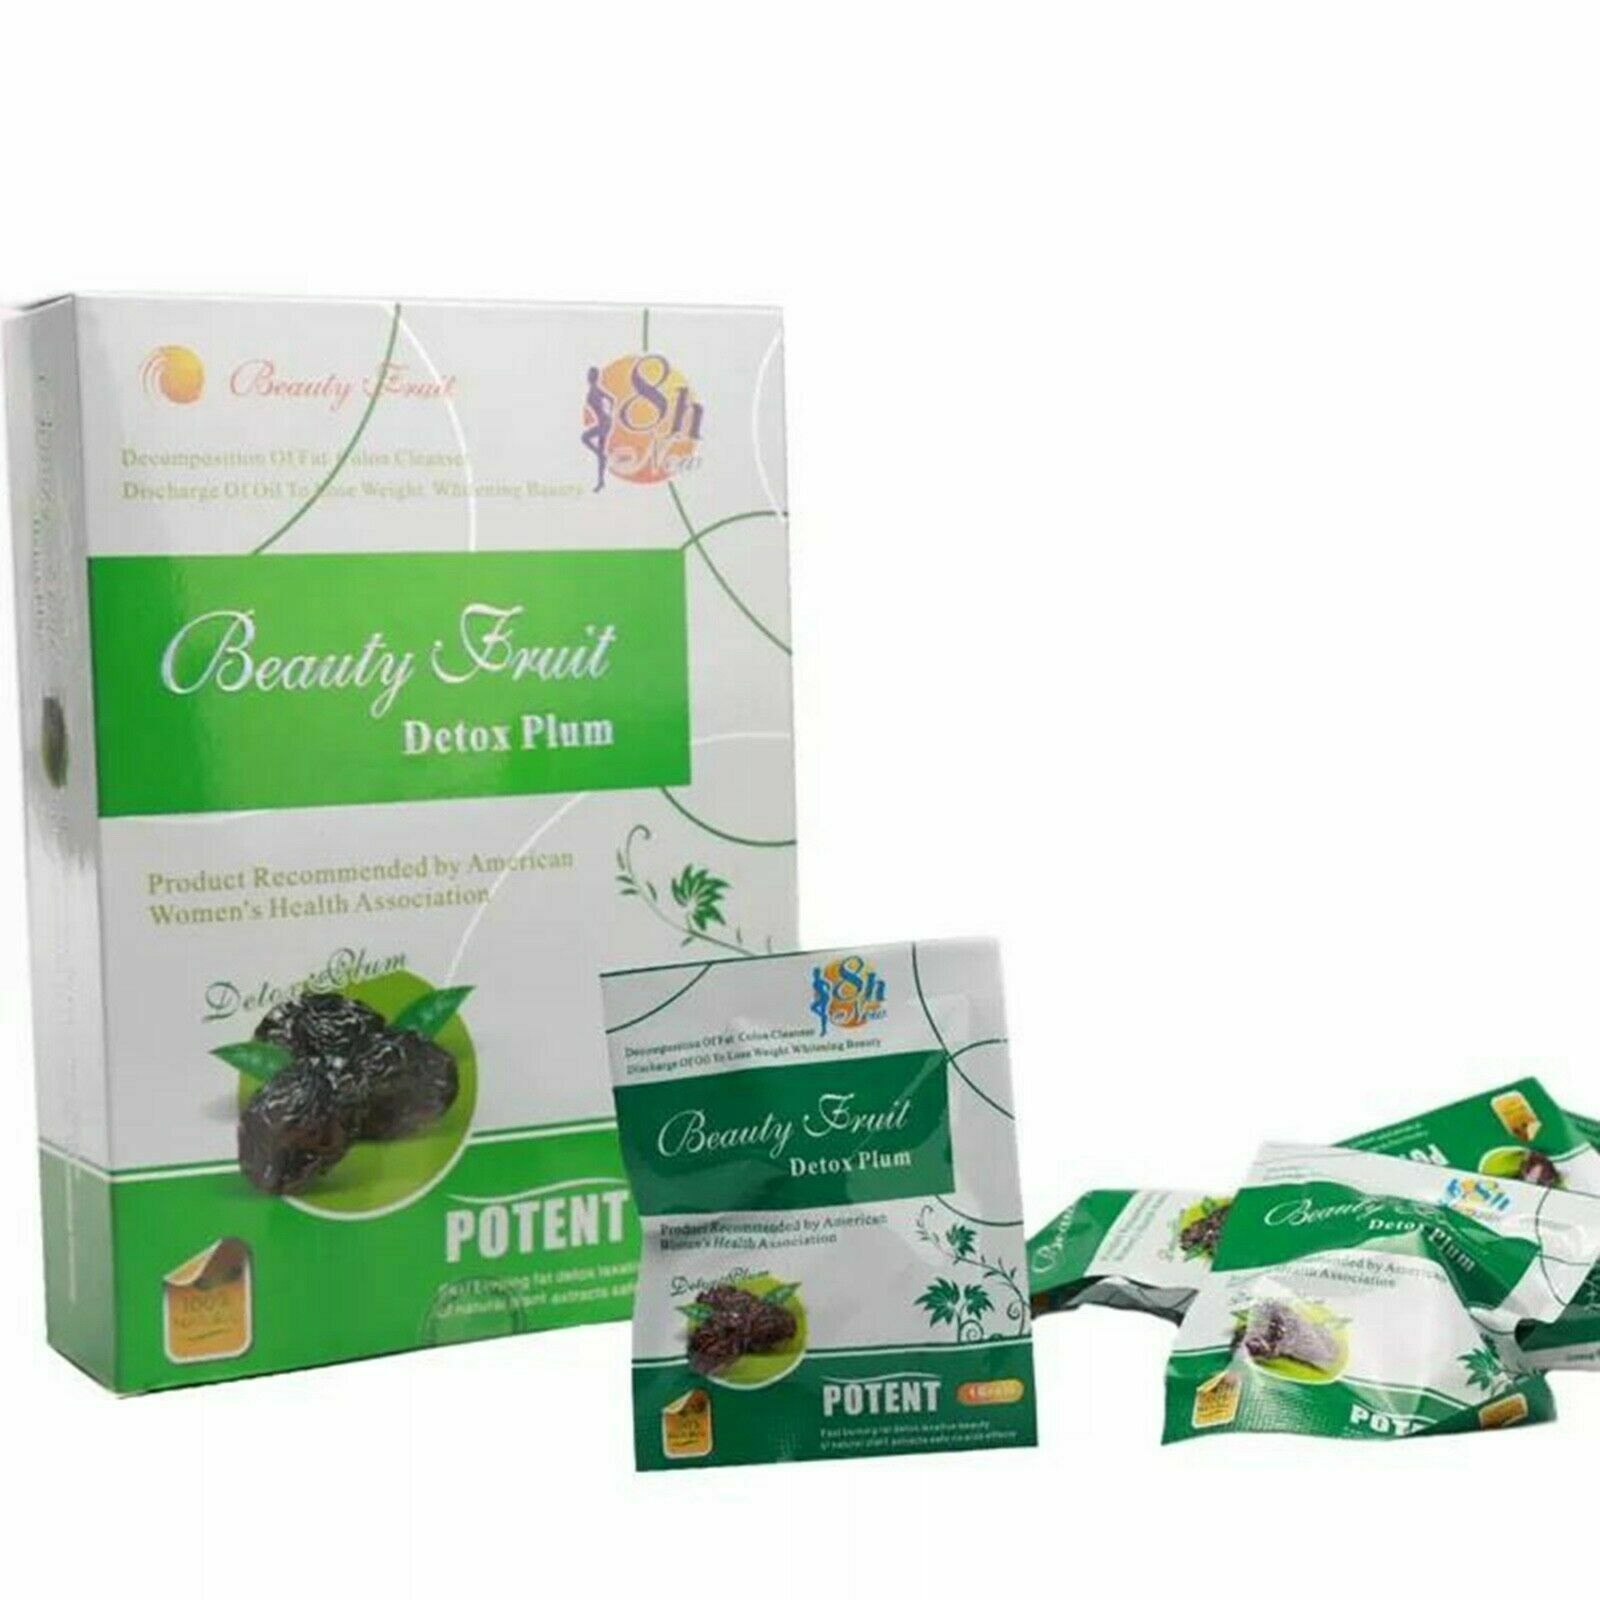 2 Boxes Beauty Fruit Detox Plum Slimming Fat Decomposition Weight Loss